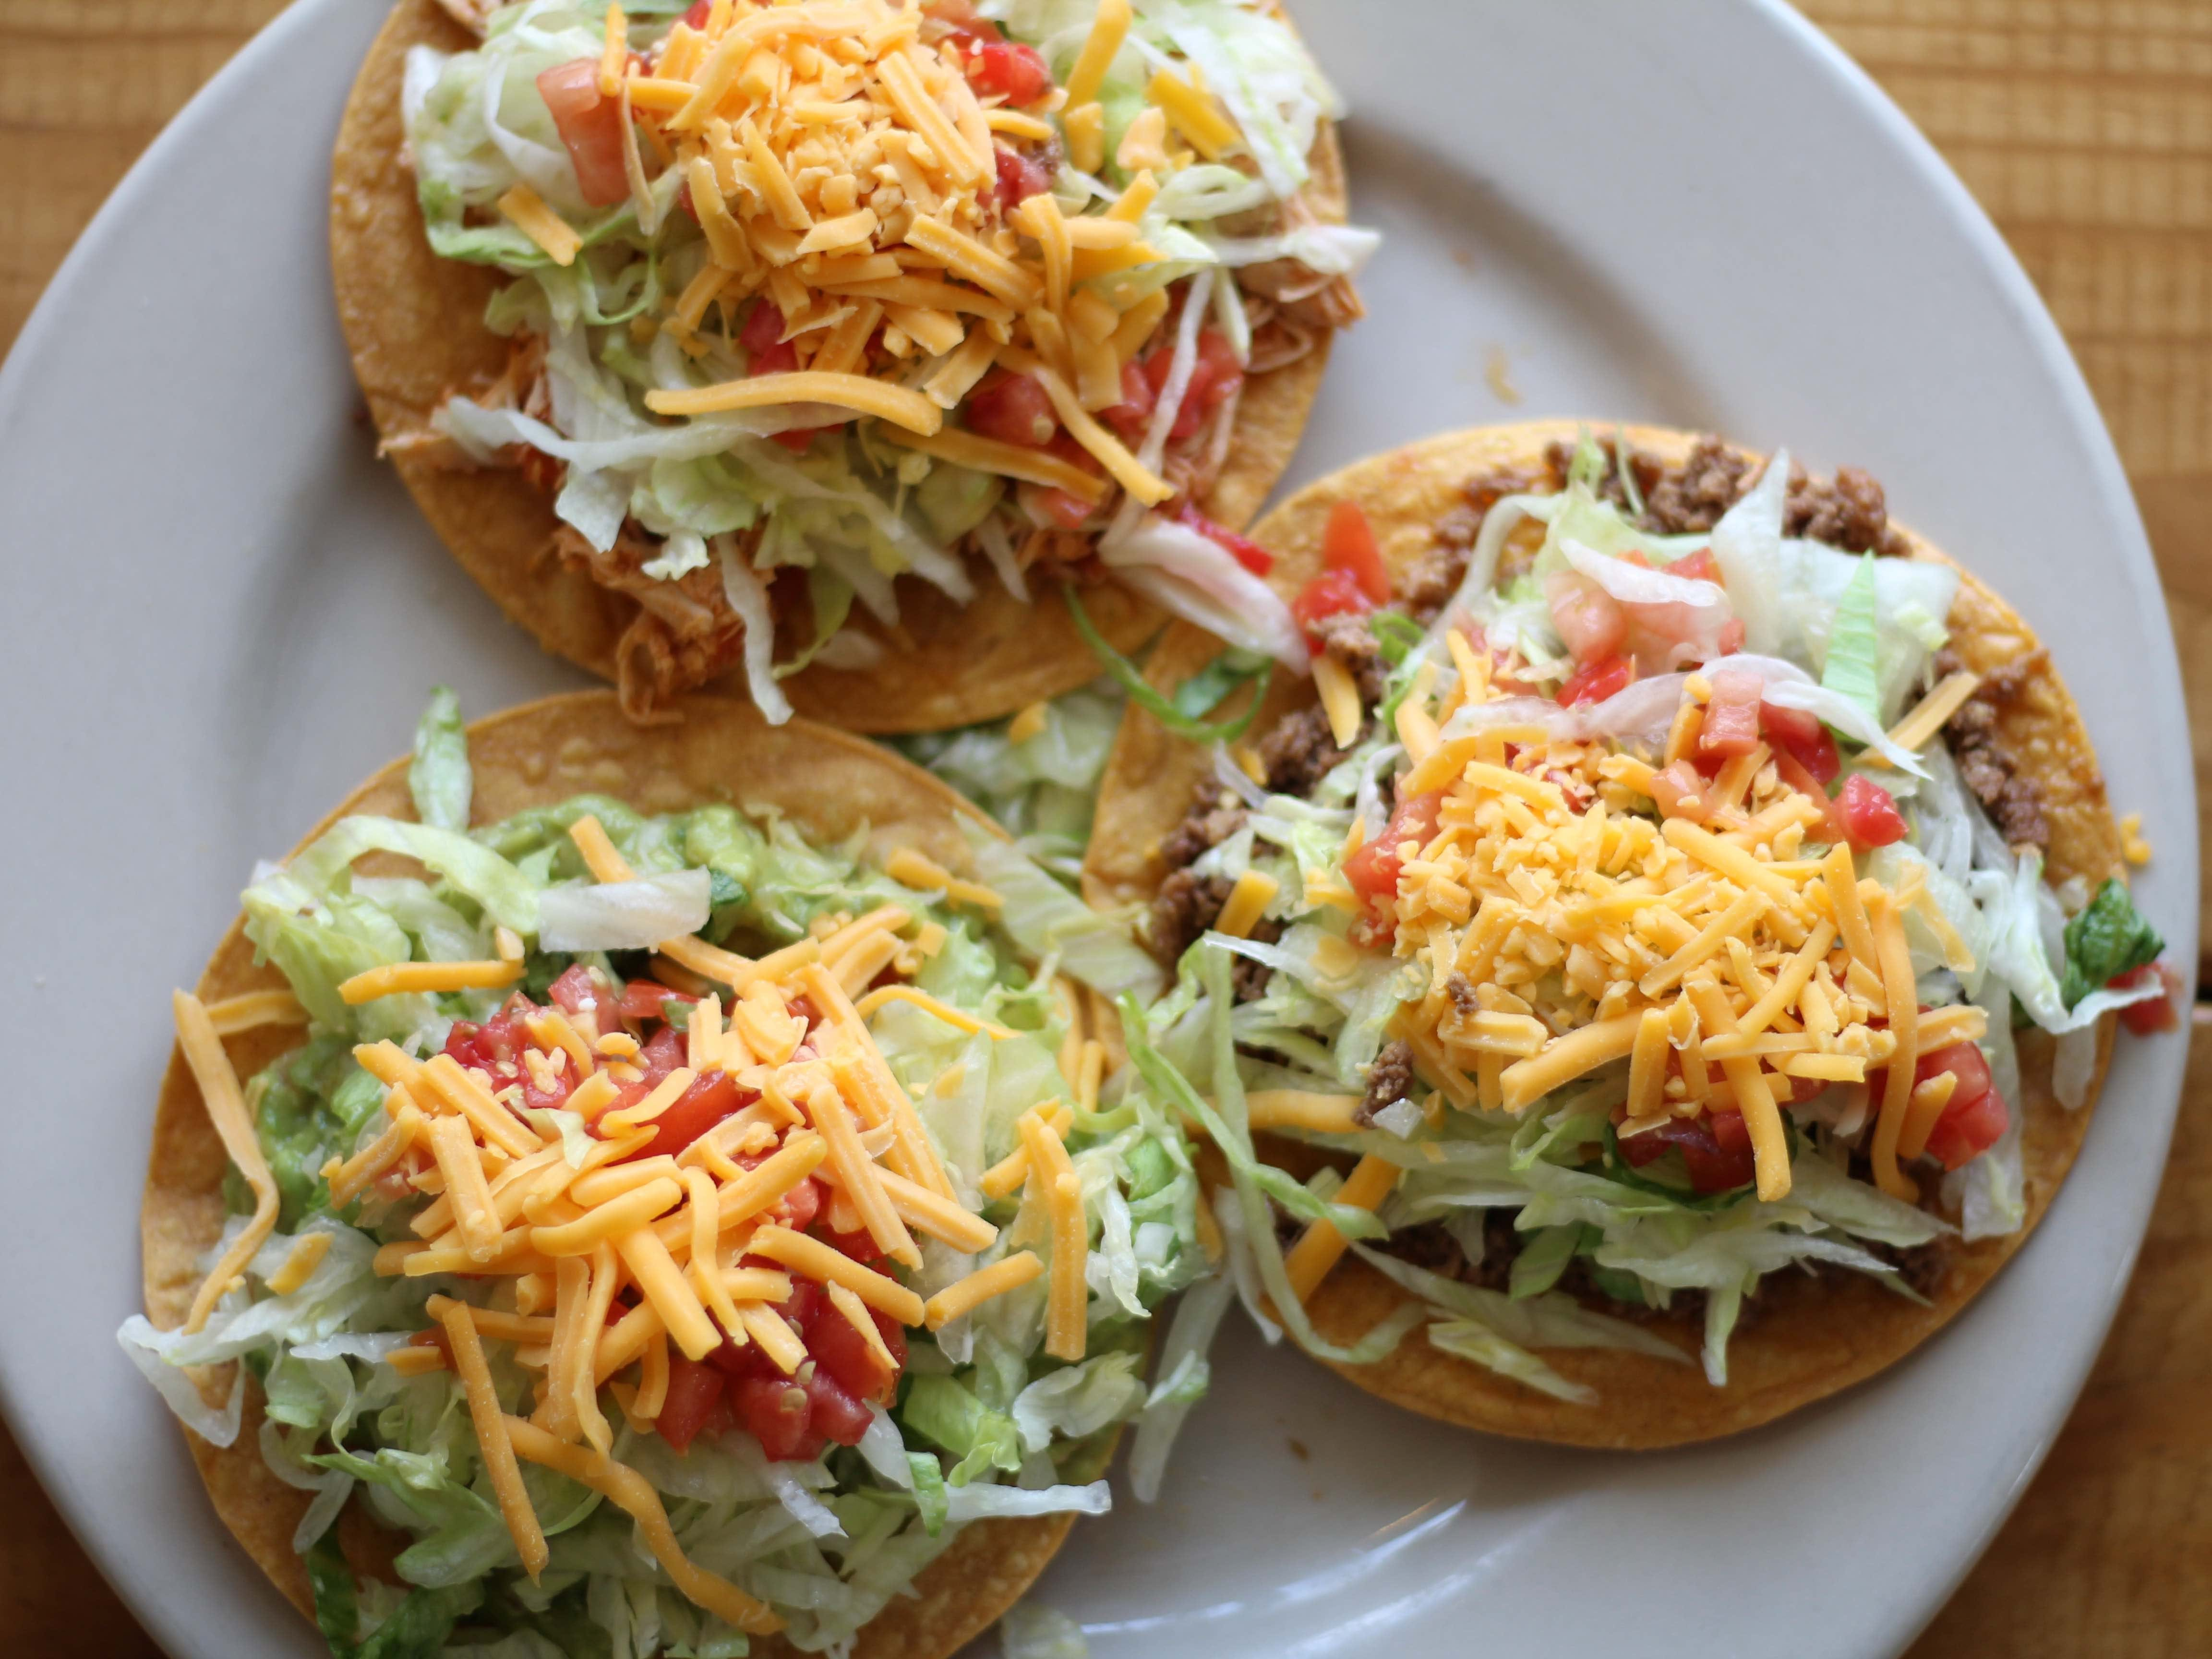 El Rincon's Tex-Mex isn't the best in town, but if you're after old-school, shredded-lettuce-and-ground-beef Tex-Mex, the restaurant doesn't stray far from the straight-and-narrow. The menu offers all the 1980s hits, from crispy chalupas (shown) to tacos, fajitas and enchiladas.